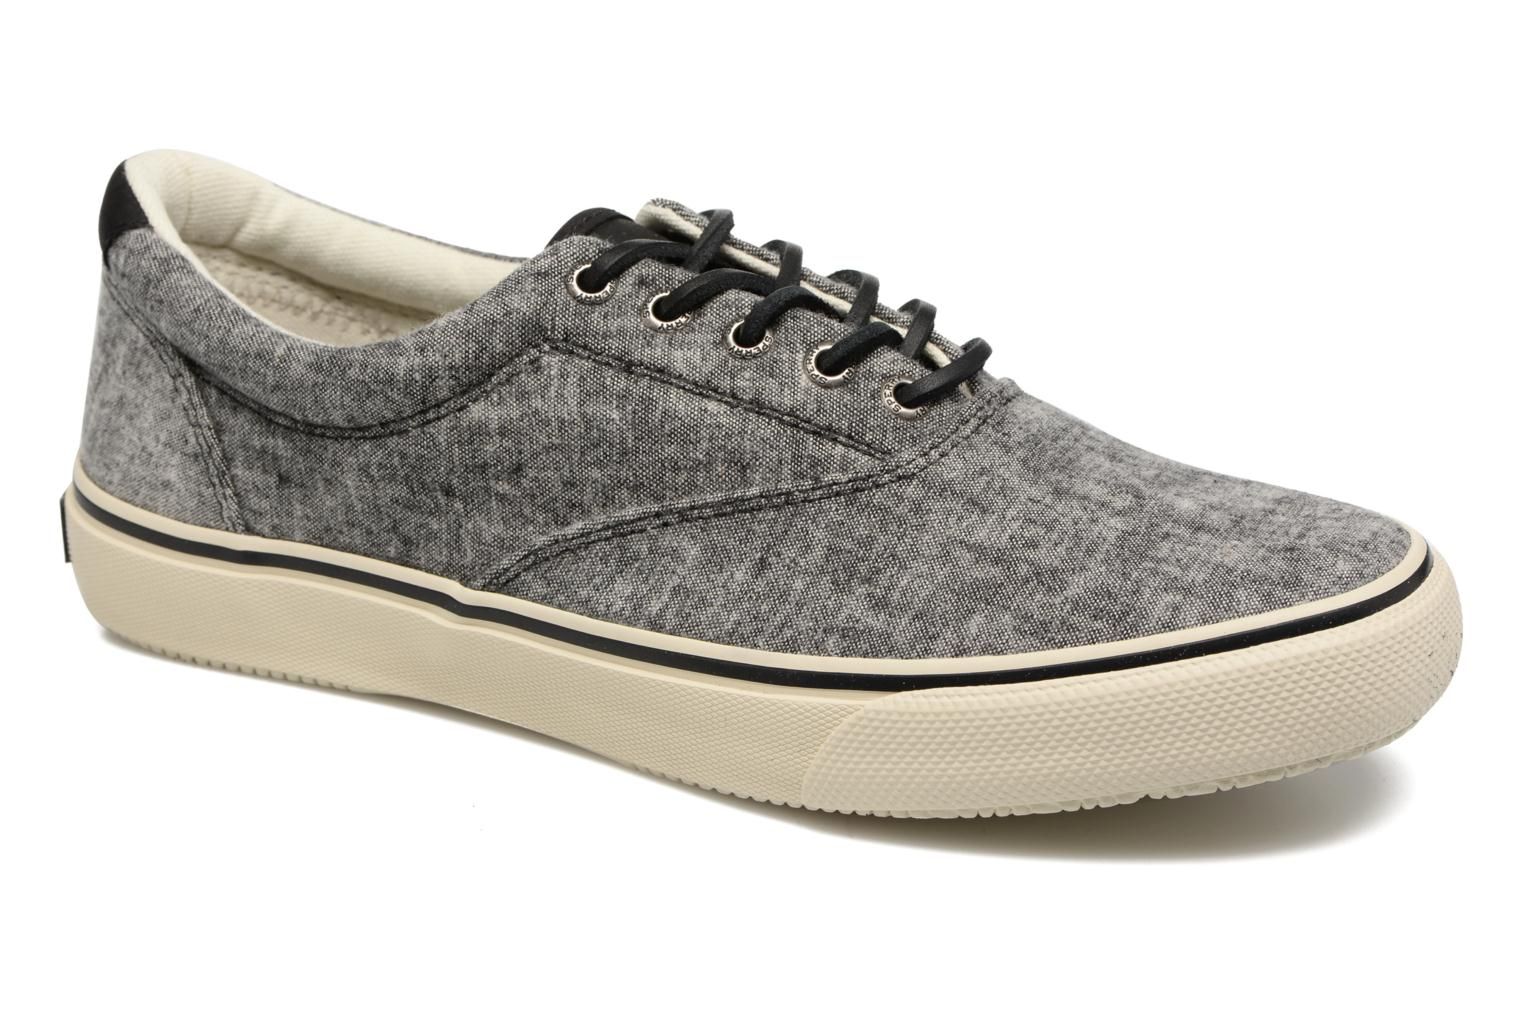 Striper LL Line by SperryRebajas - 10%